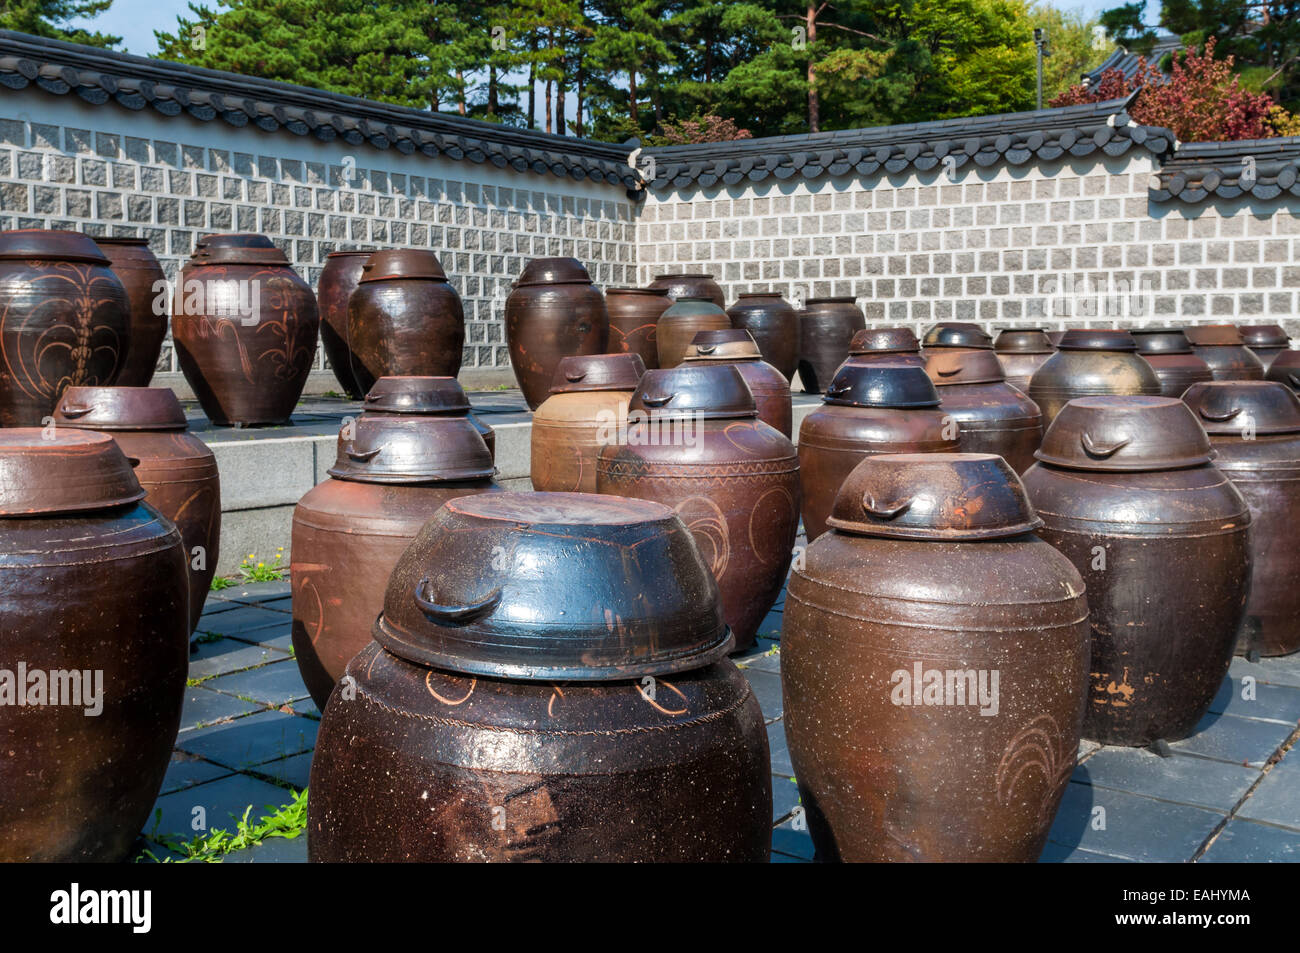 Dozens of large clay pots hold fermenting kimchi in Seoul, South Korea. - Stock Image